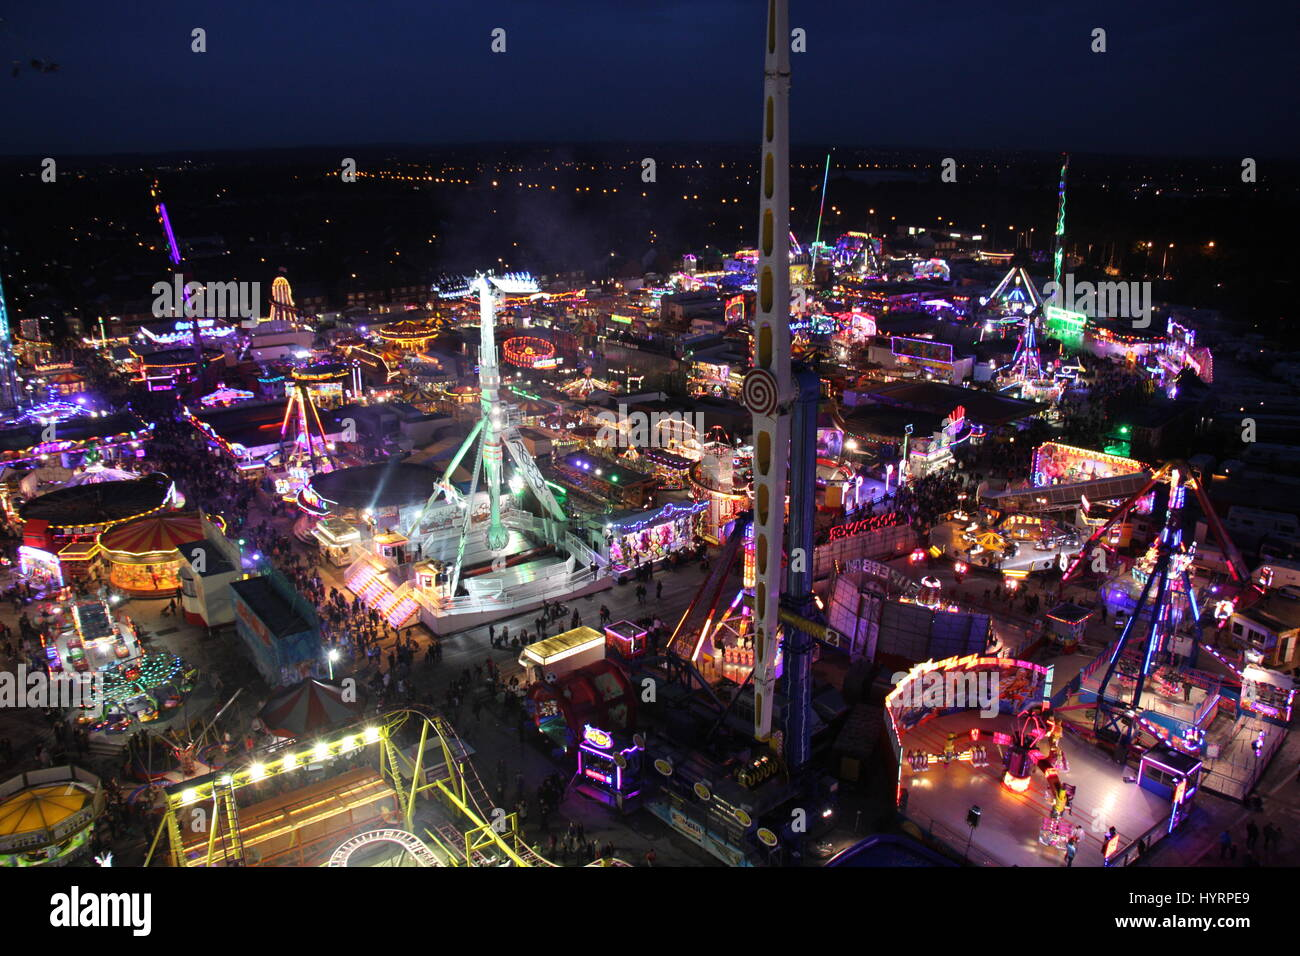 hull fair - photo #8